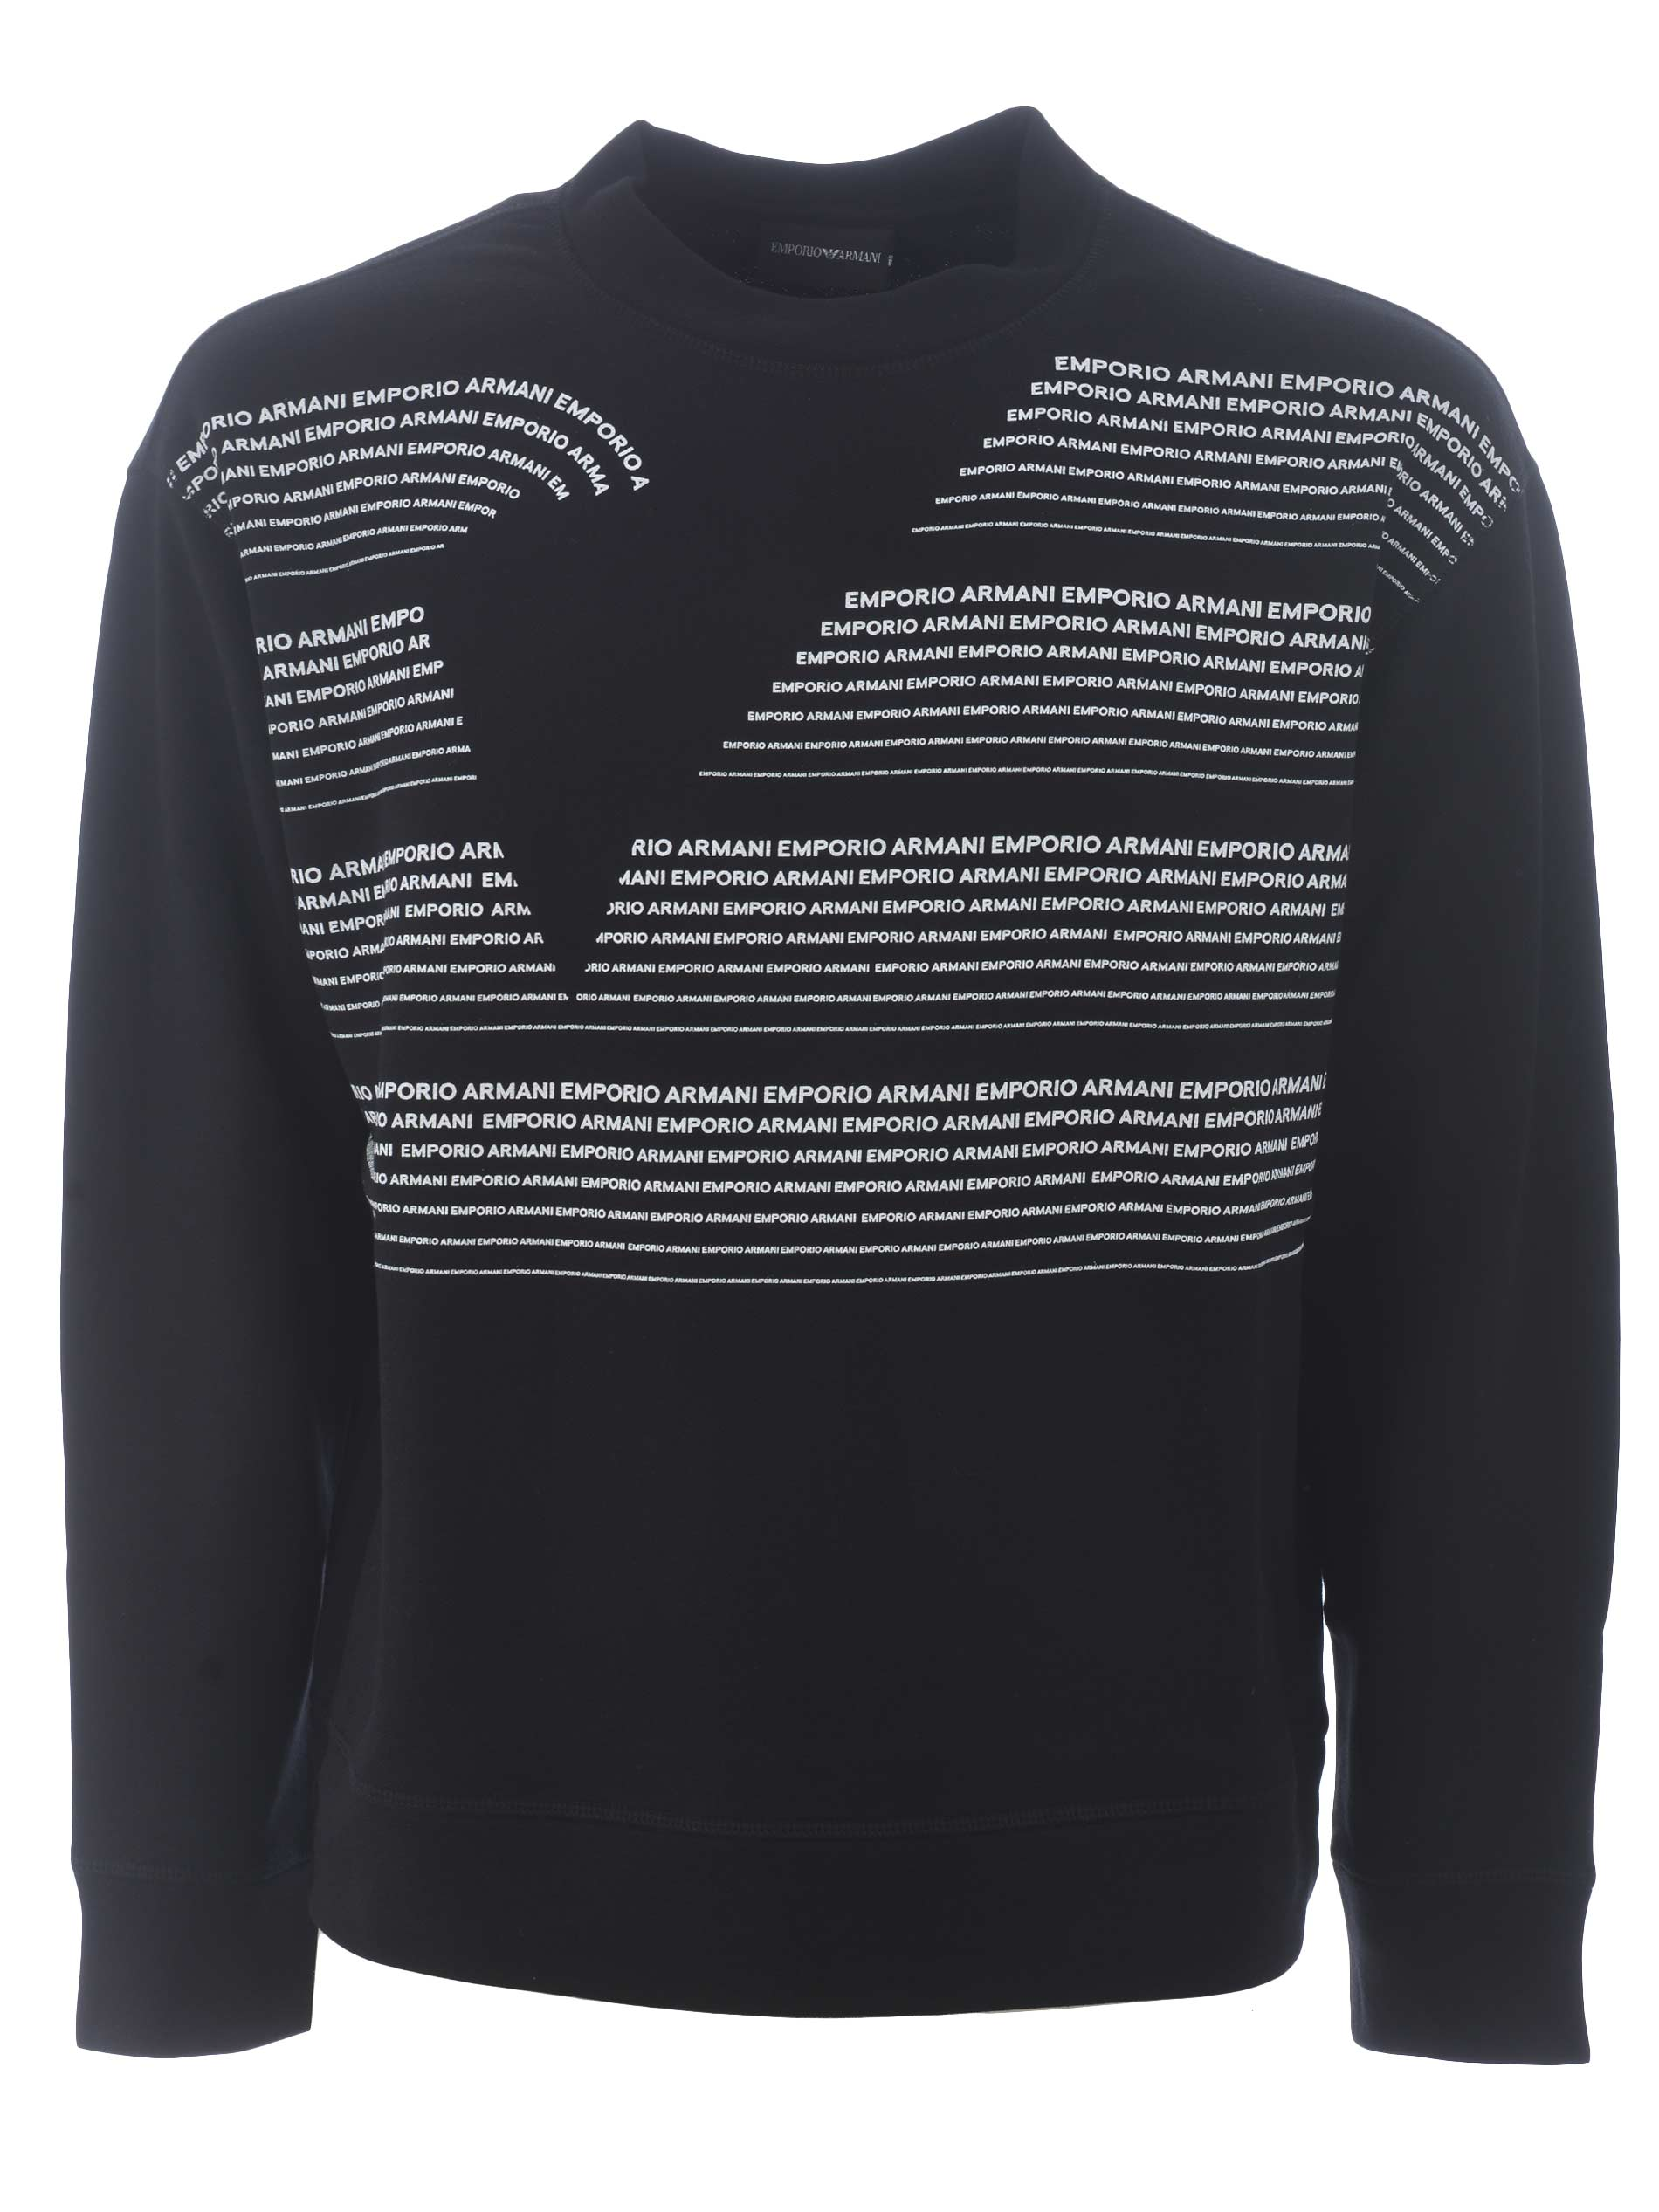 Emporio Armani sweatshirt in cotton blend